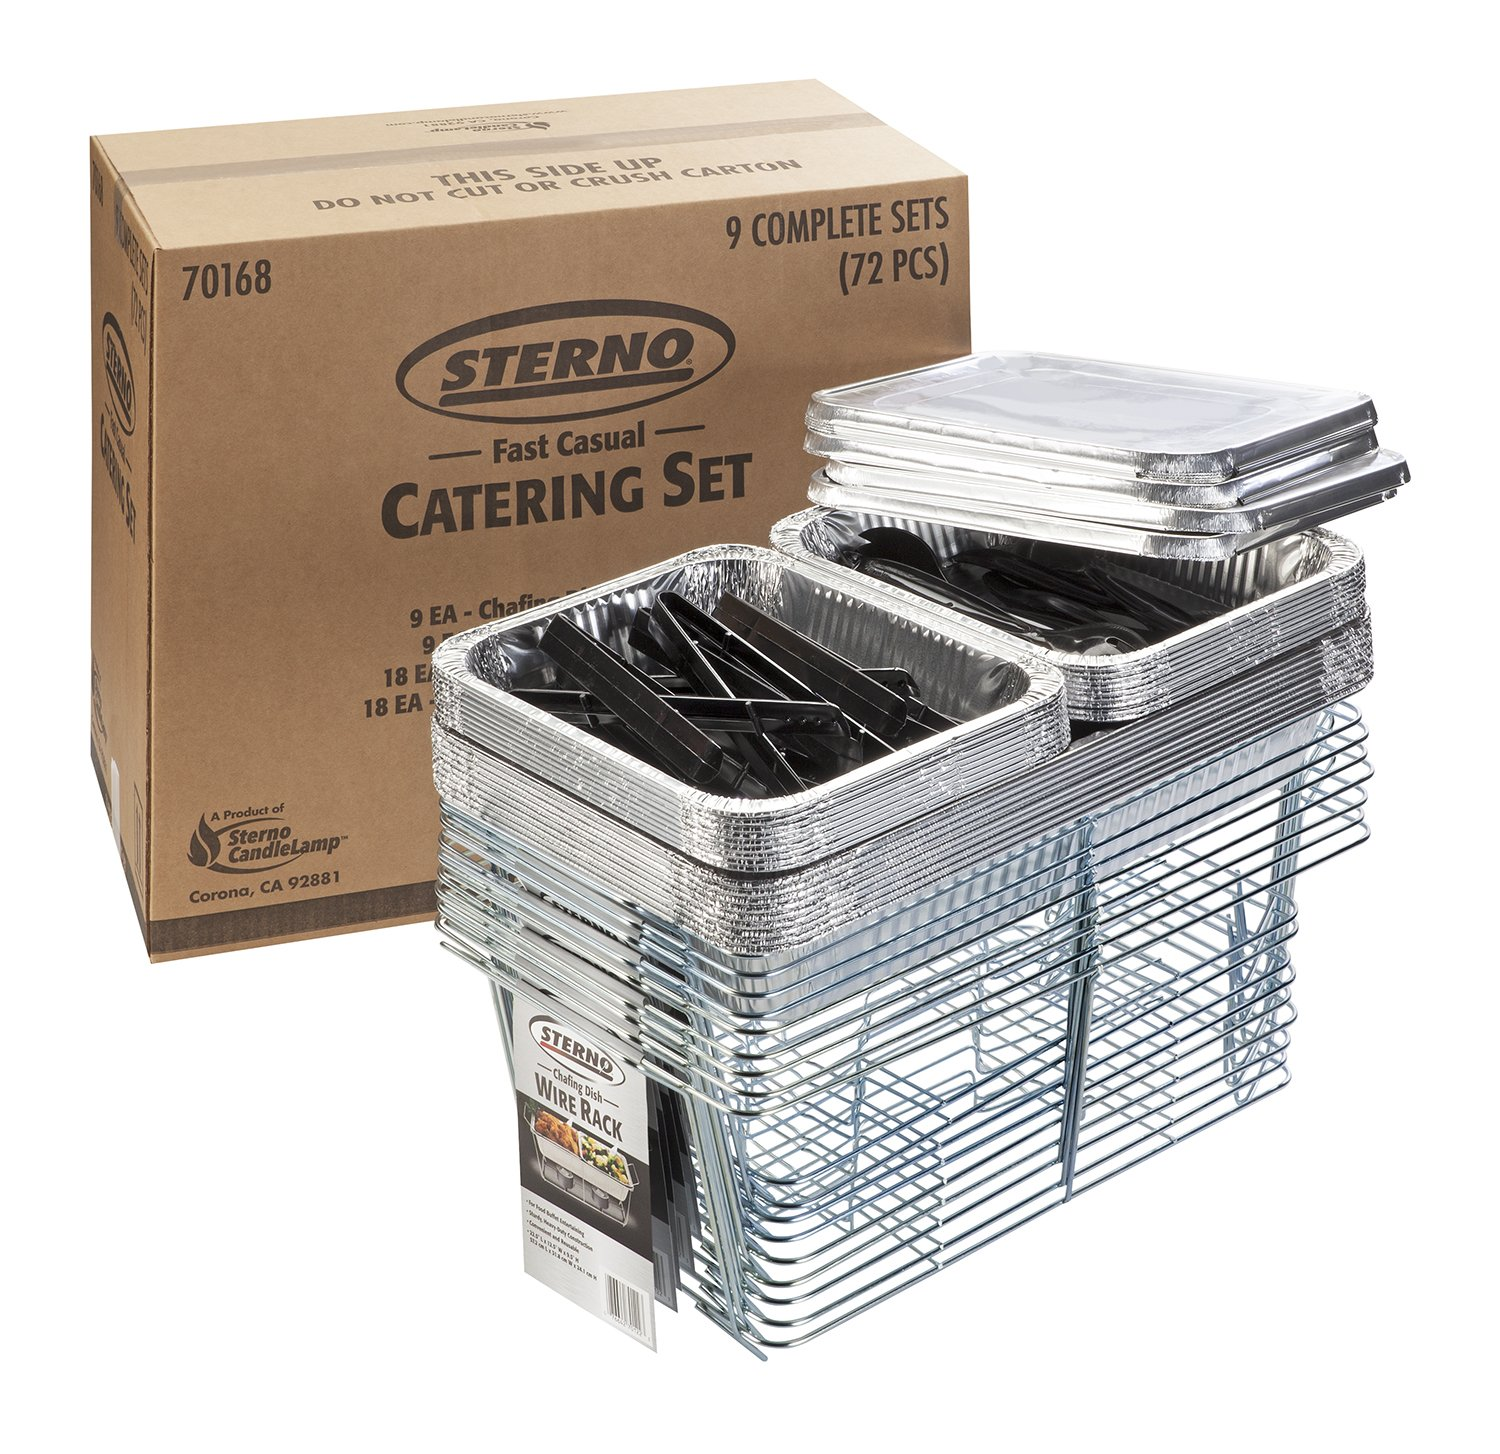 Sterno 70168 Fast Casual Catering Set (Pack of 72) by Sterno